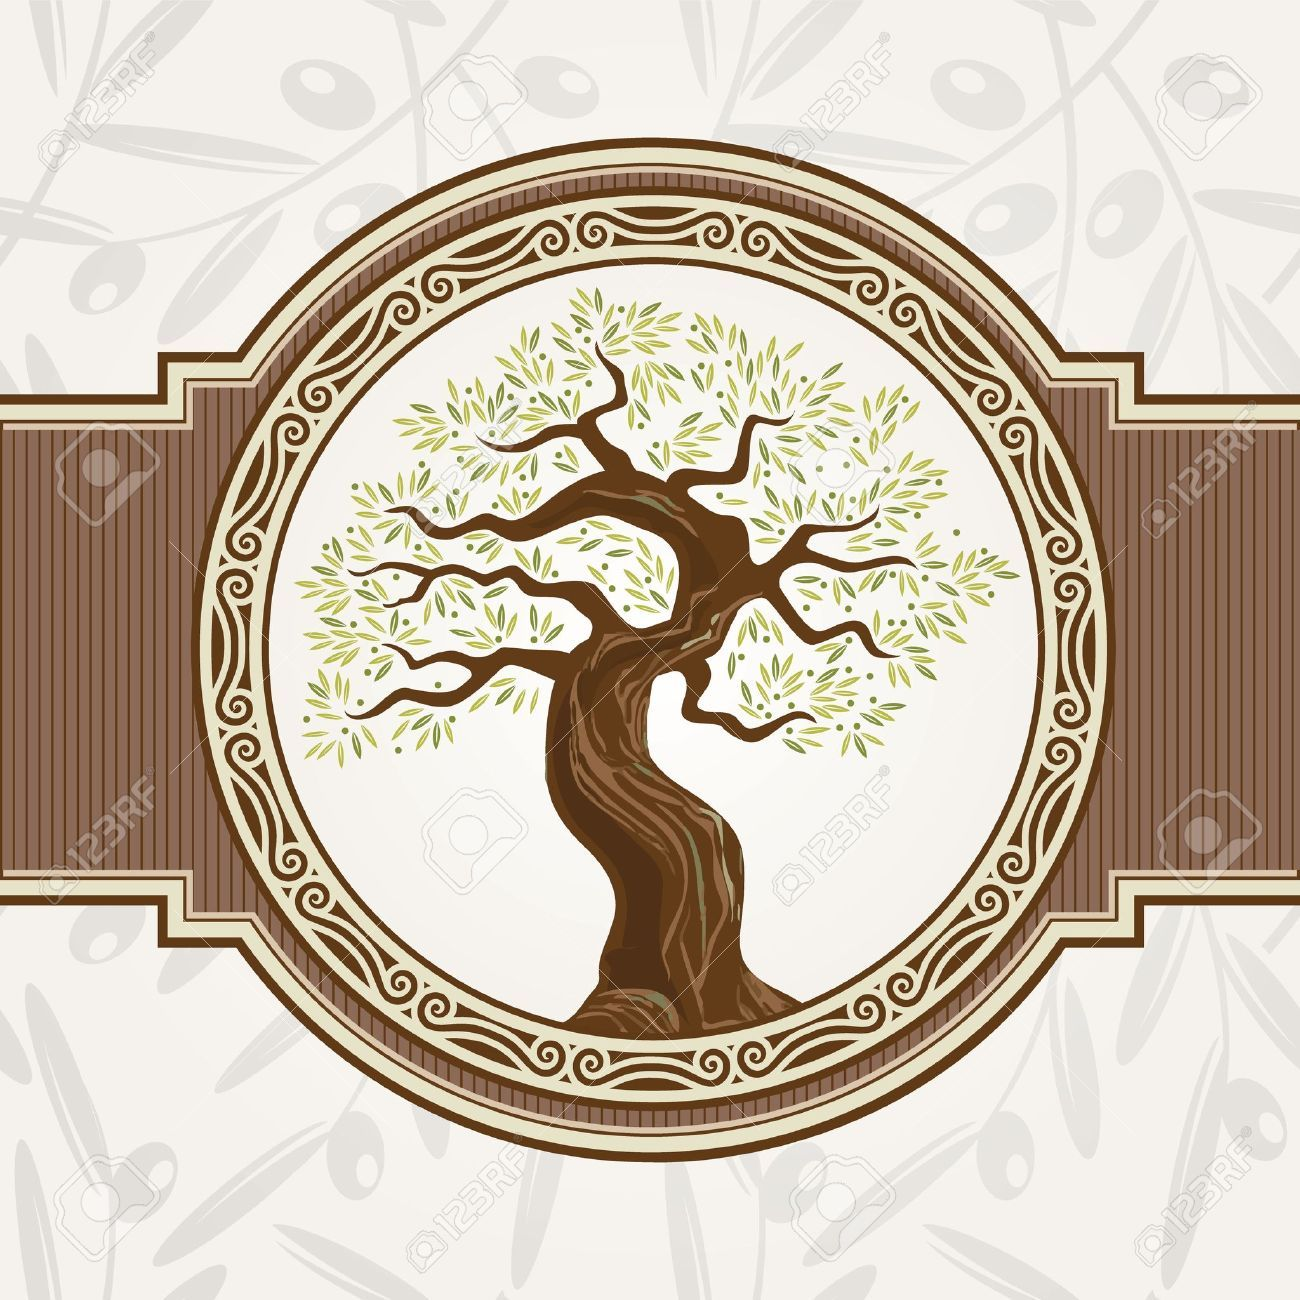 Graphic symbol of the olive tree google search olive tree graphic symbol of the olive tree google search buycottarizona Choice Image